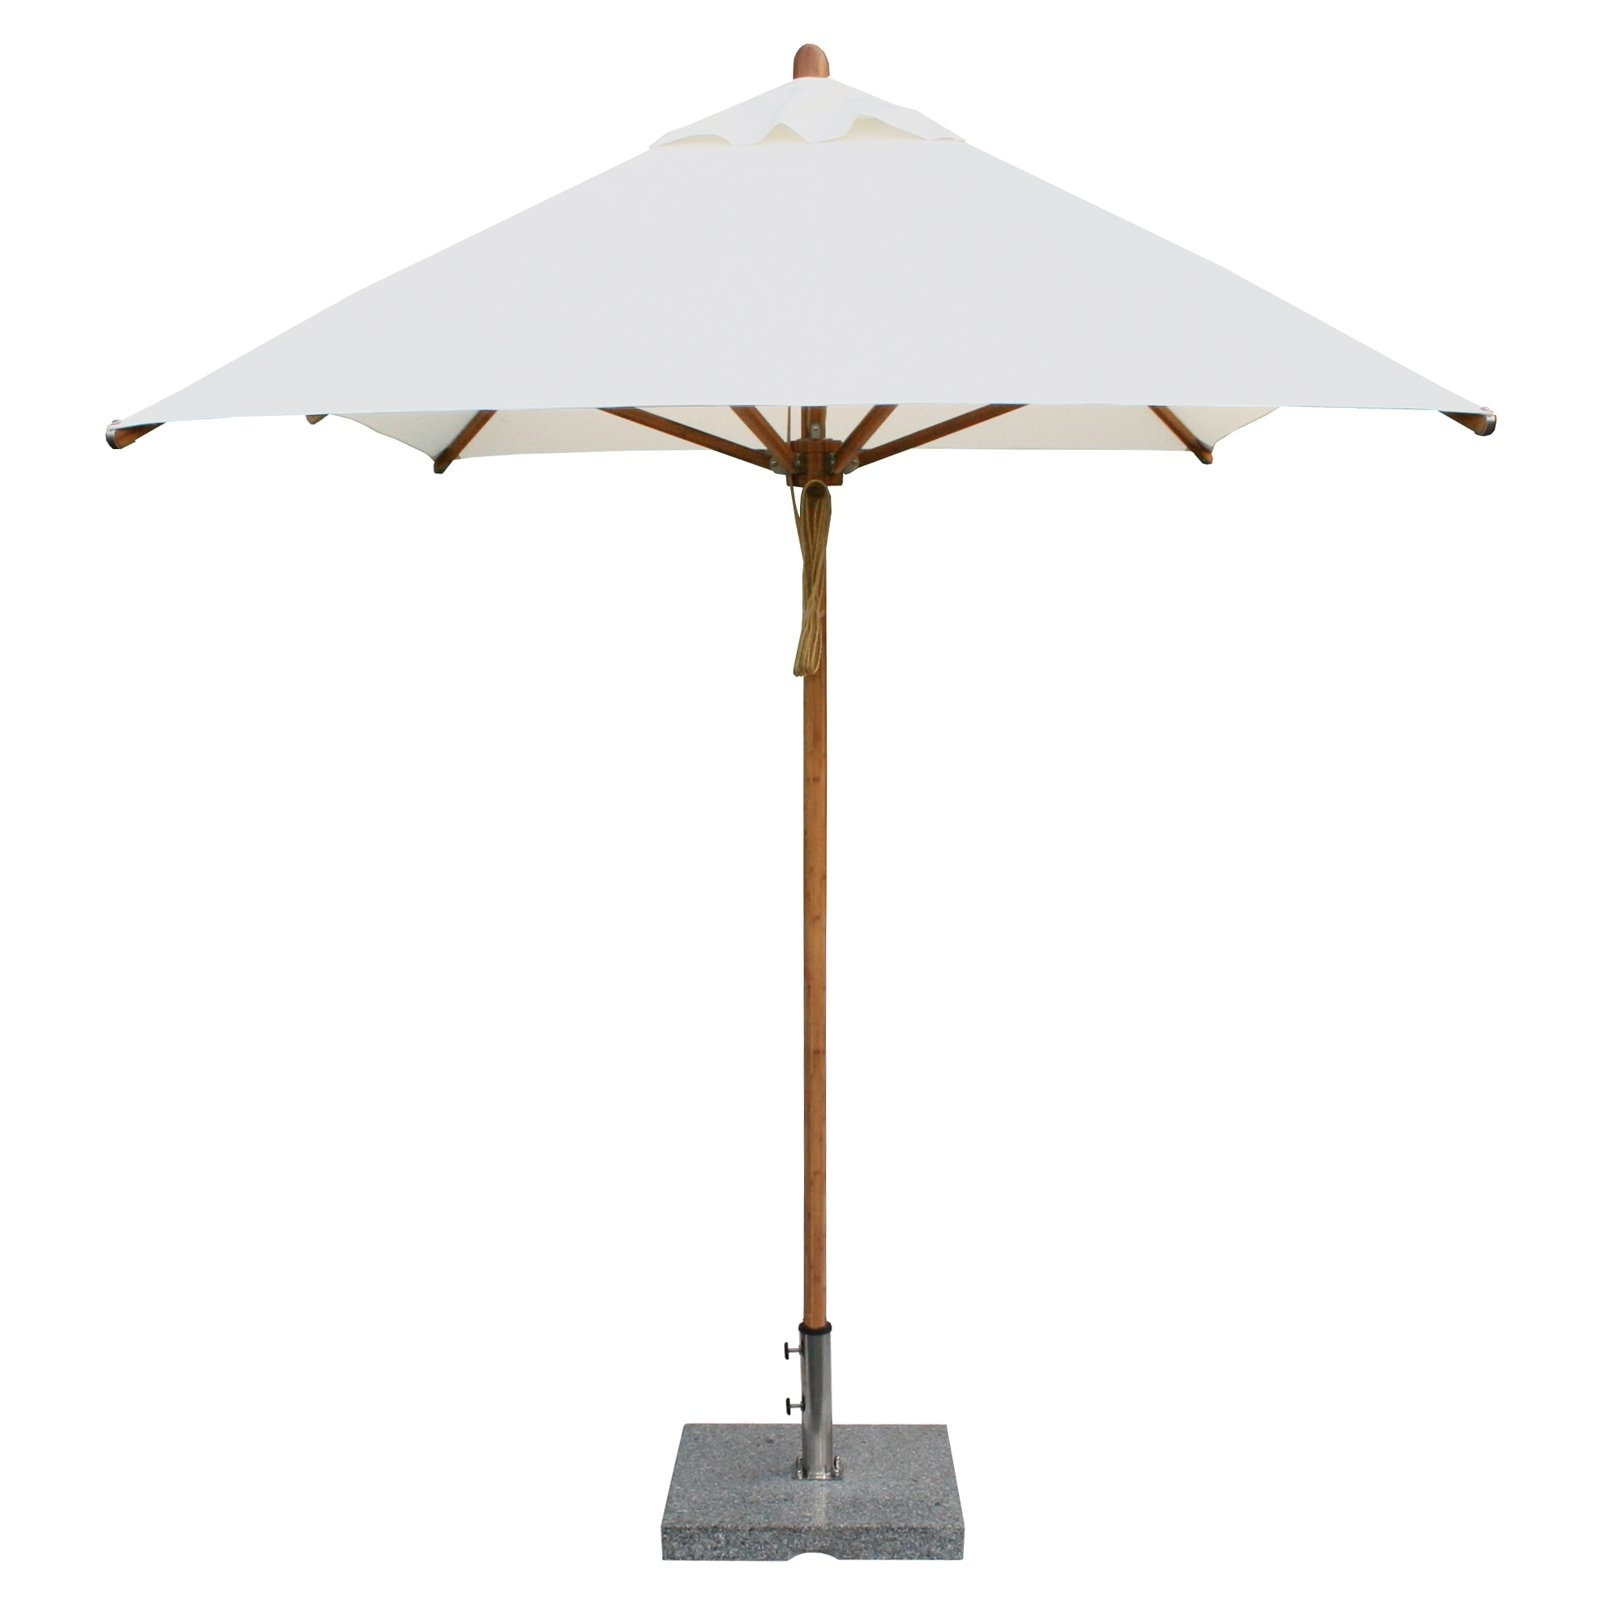 Outdoor: Cantilever Umbrella Plus Cantilever Umbrella Eclipse For With Regard To Fashionable Eclipse Patio Umbrellas (View 20 of 20)